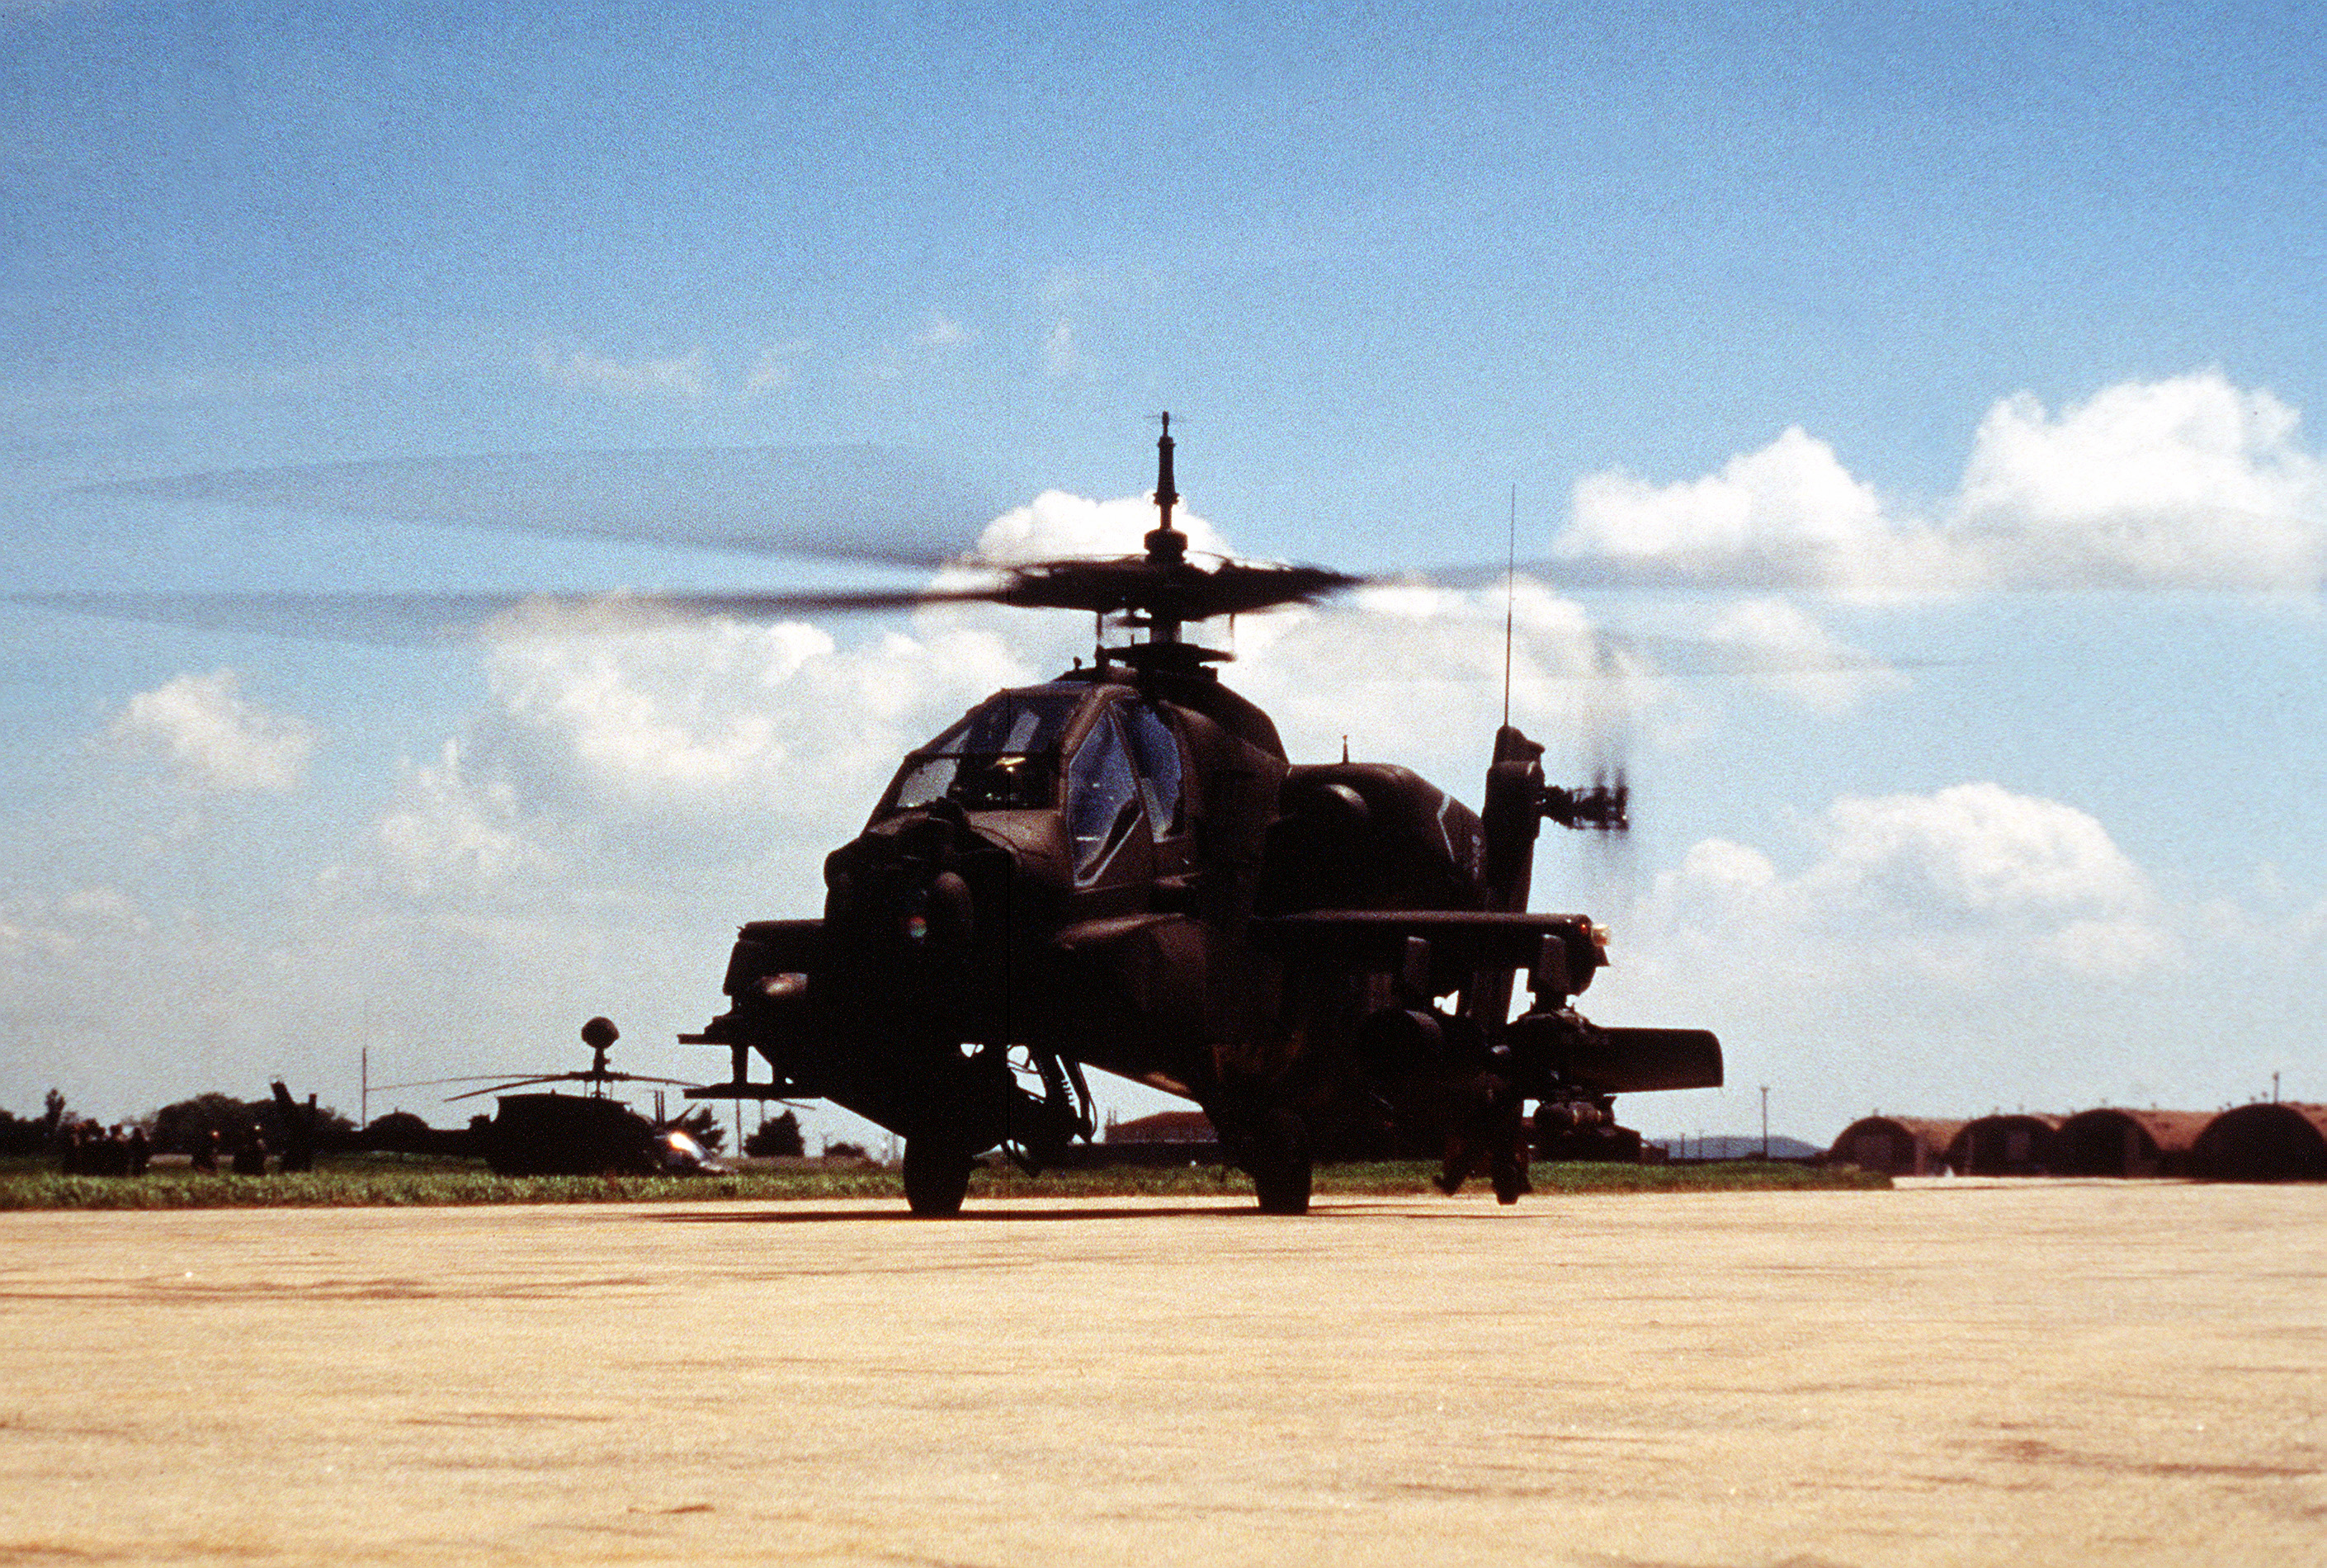 Left front view of an AH-64 Apache helicopter at Chick Do Island